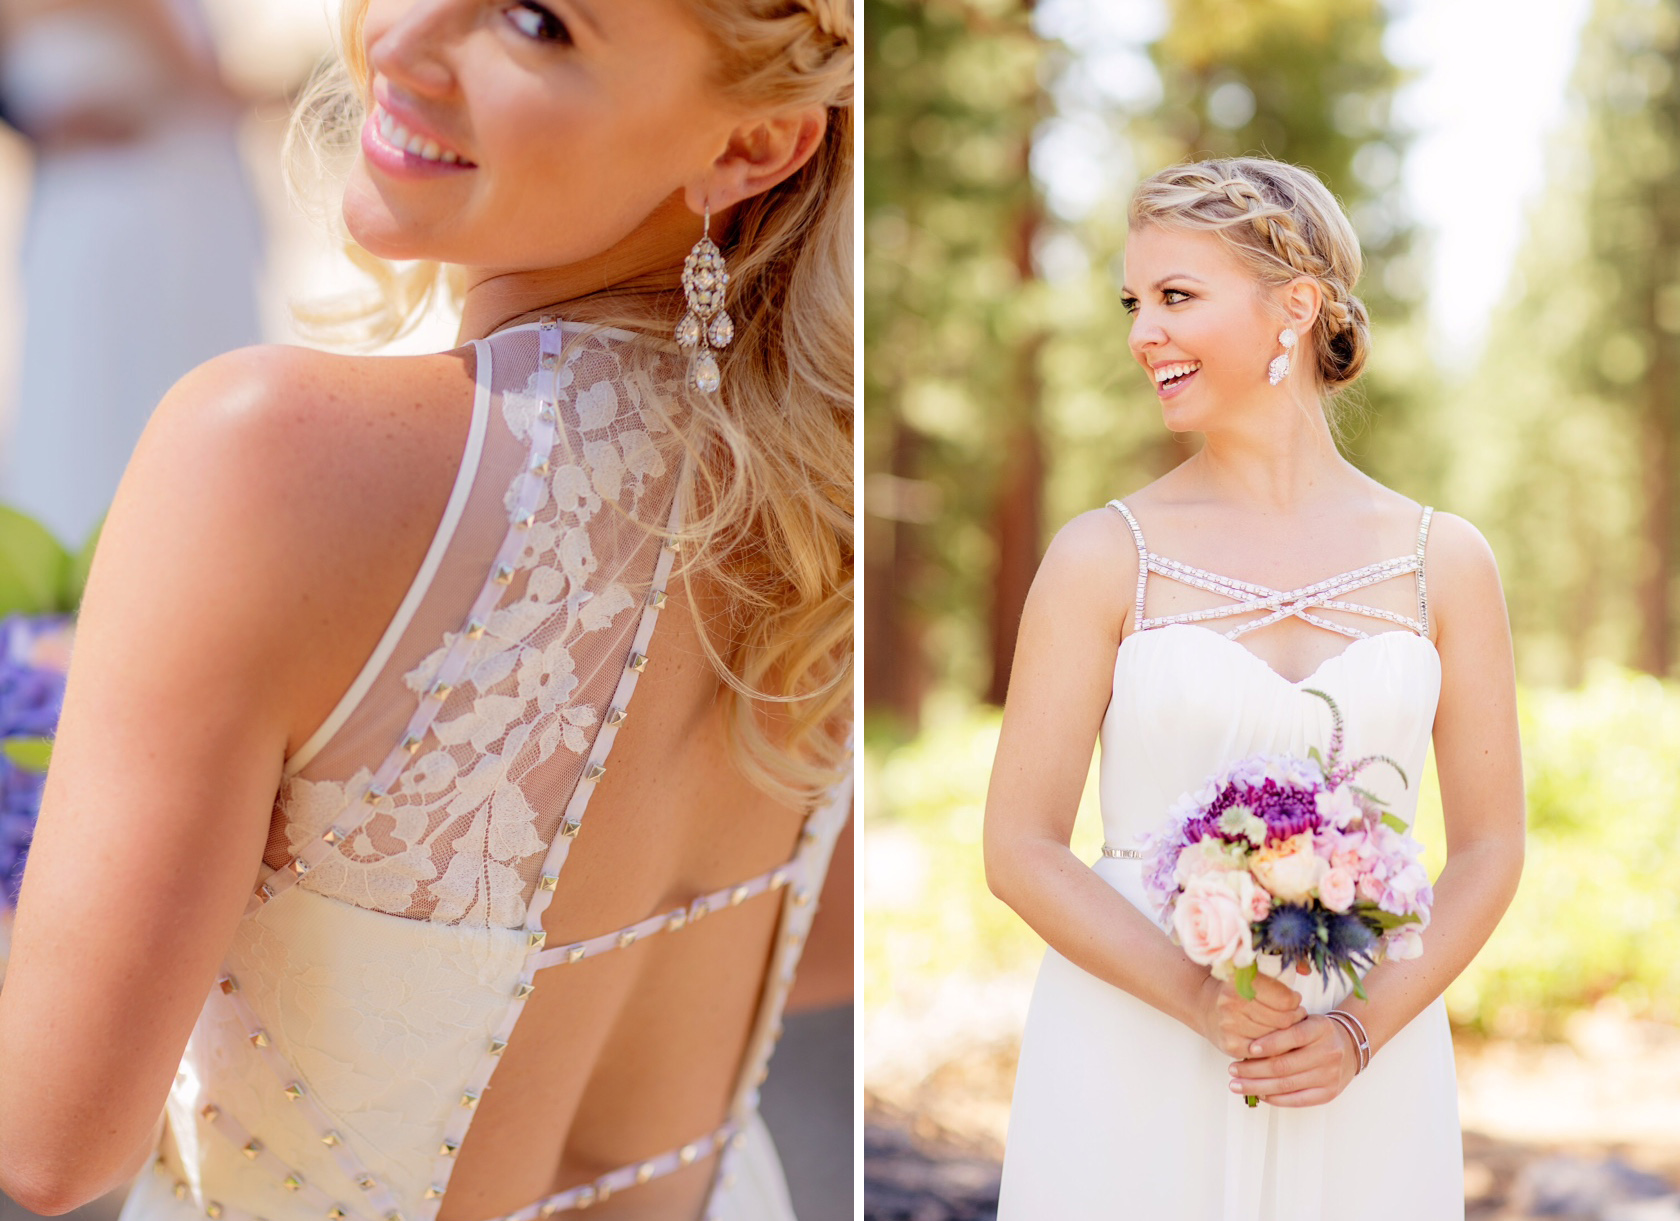 Chandelier earrings designed with White Opal and Clear Swarovski Elements, to match their custom Hayley Paige bridesmaid gowns.